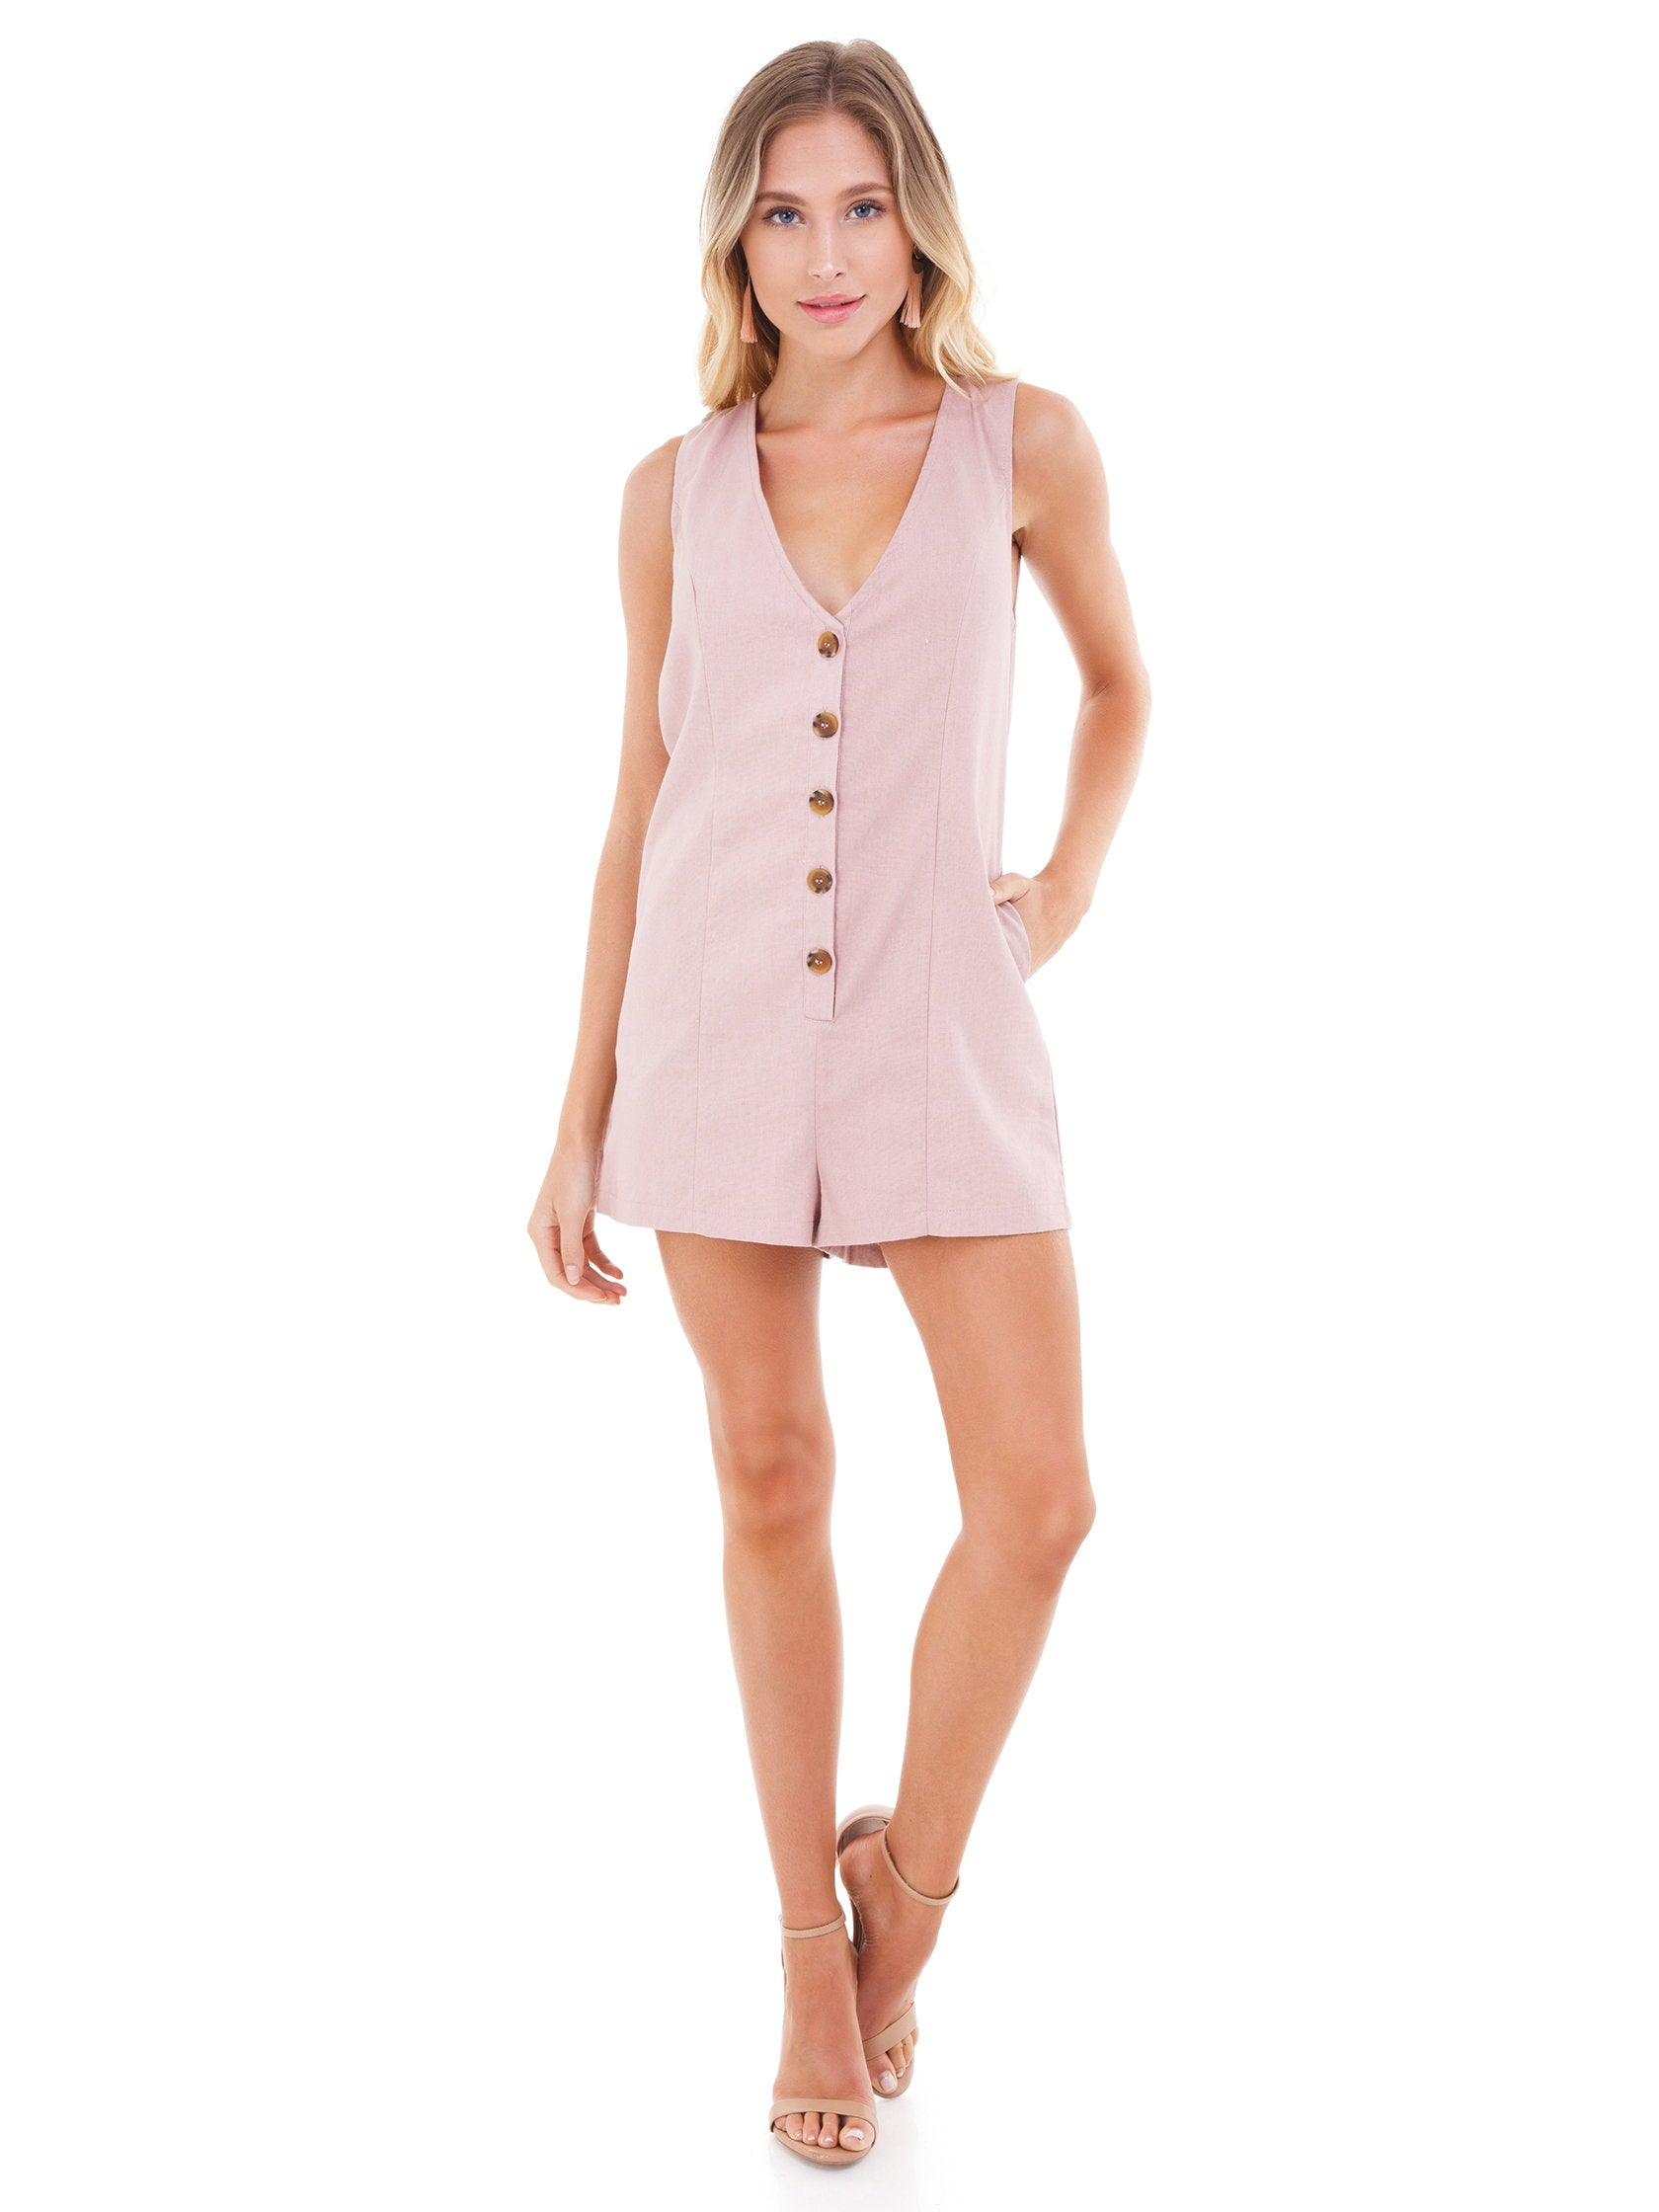 Girl outfit in a romper rental from FashionPass called Woven Button Down Romper